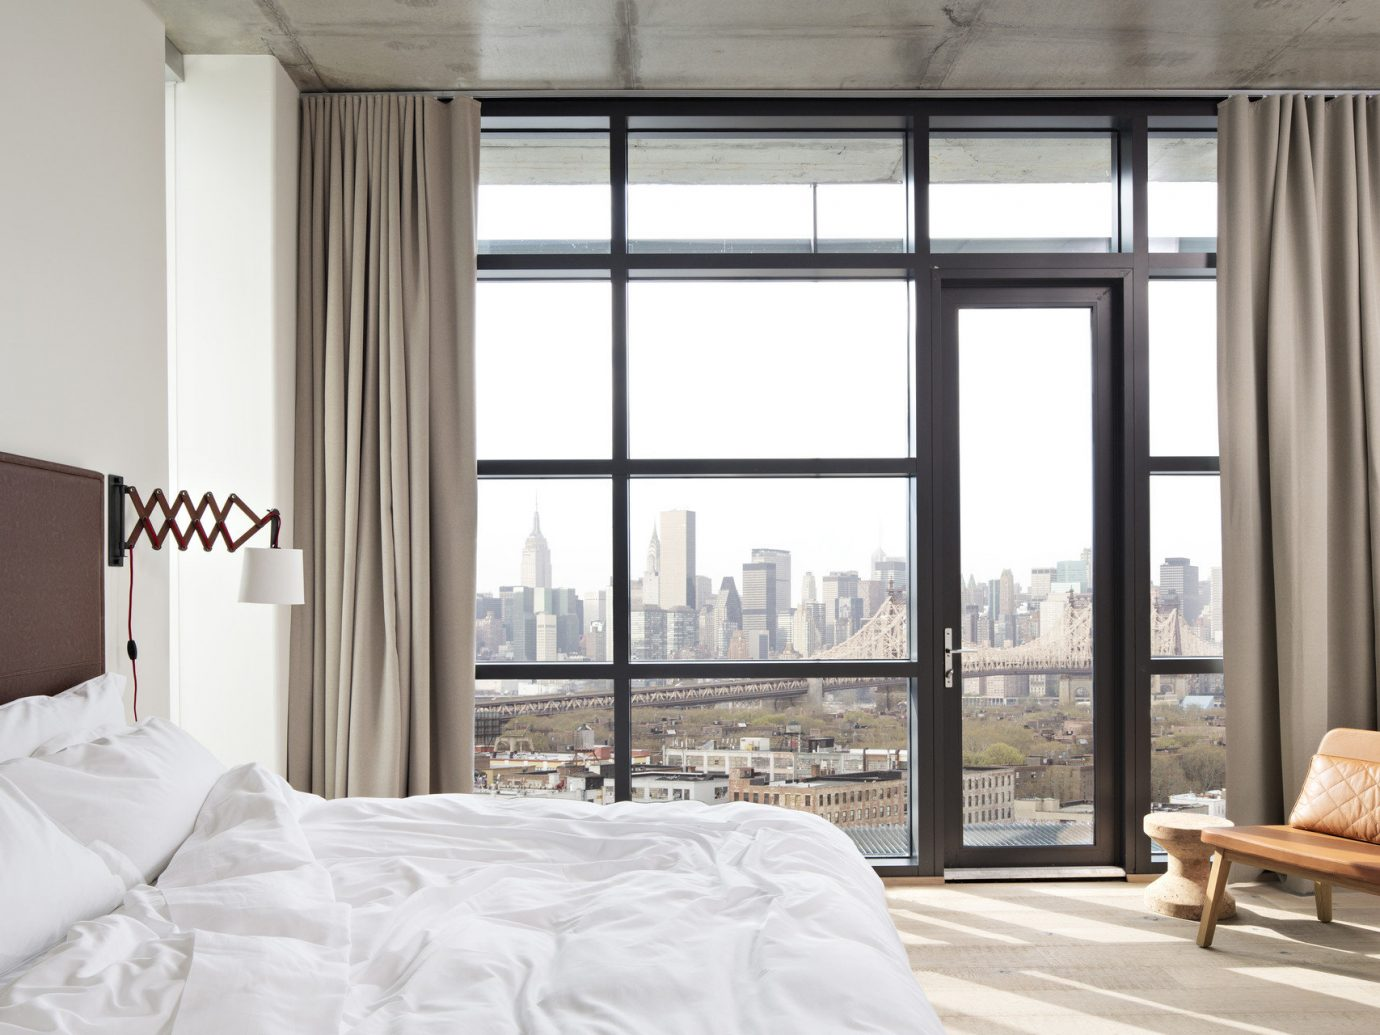 bed Bedroom Boutique chic City city views contemporary Hip Hotels interior Luxury Modern natural light neutral tones Style + Design trendy view window indoor room property hotel interior design floor curtain furniture pillow living room home window covering wood window treatment textile ceiling